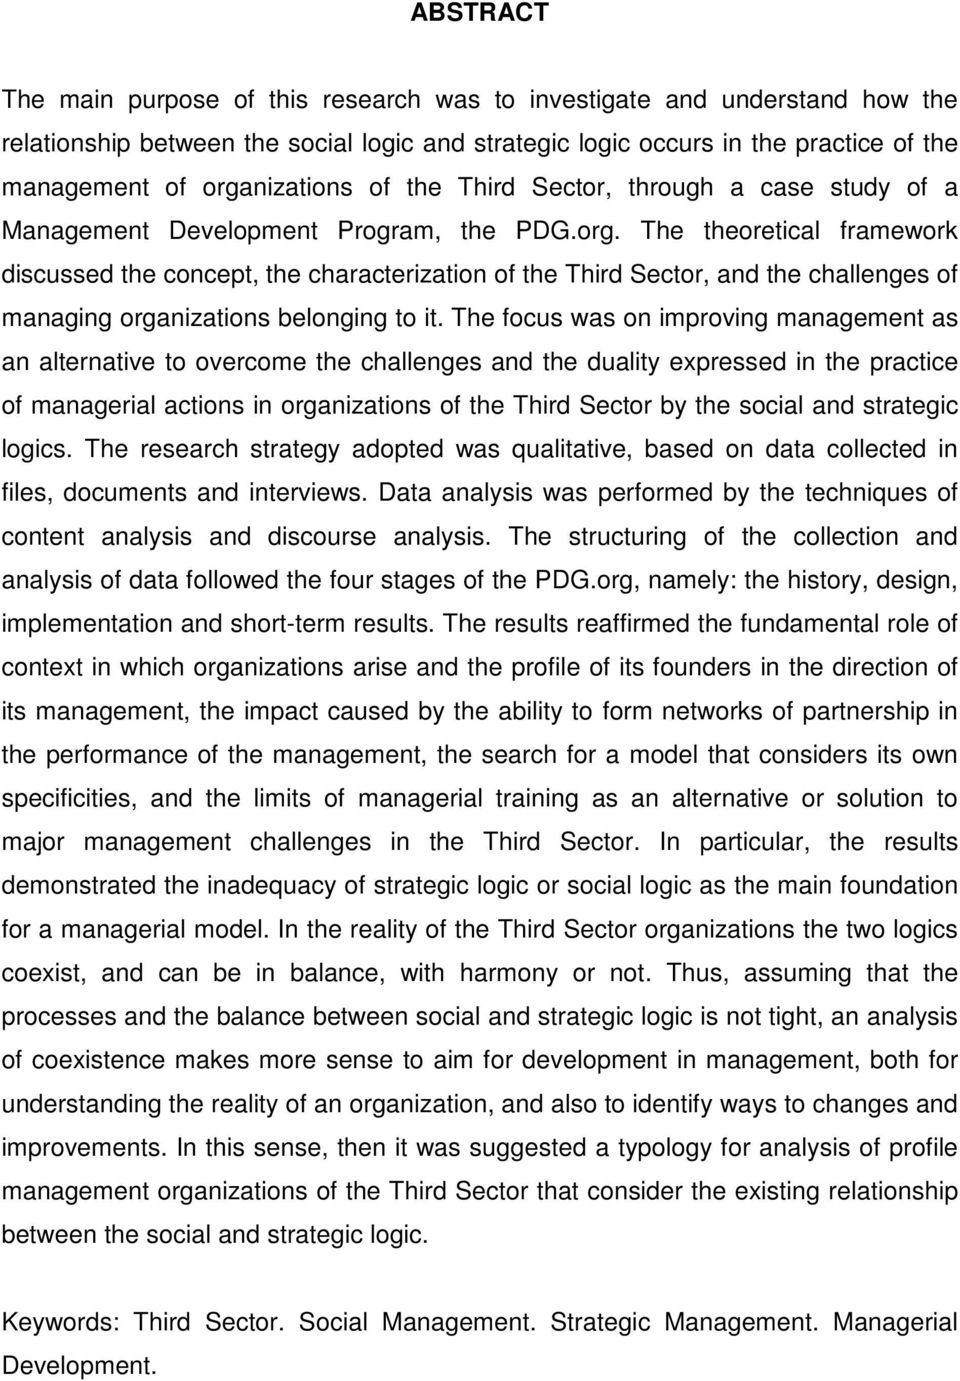 The focus was on improving management as an alternative to overcome the challenges and the duality expressed in the practice of managerial actions in organizations of the Third Sector by the social